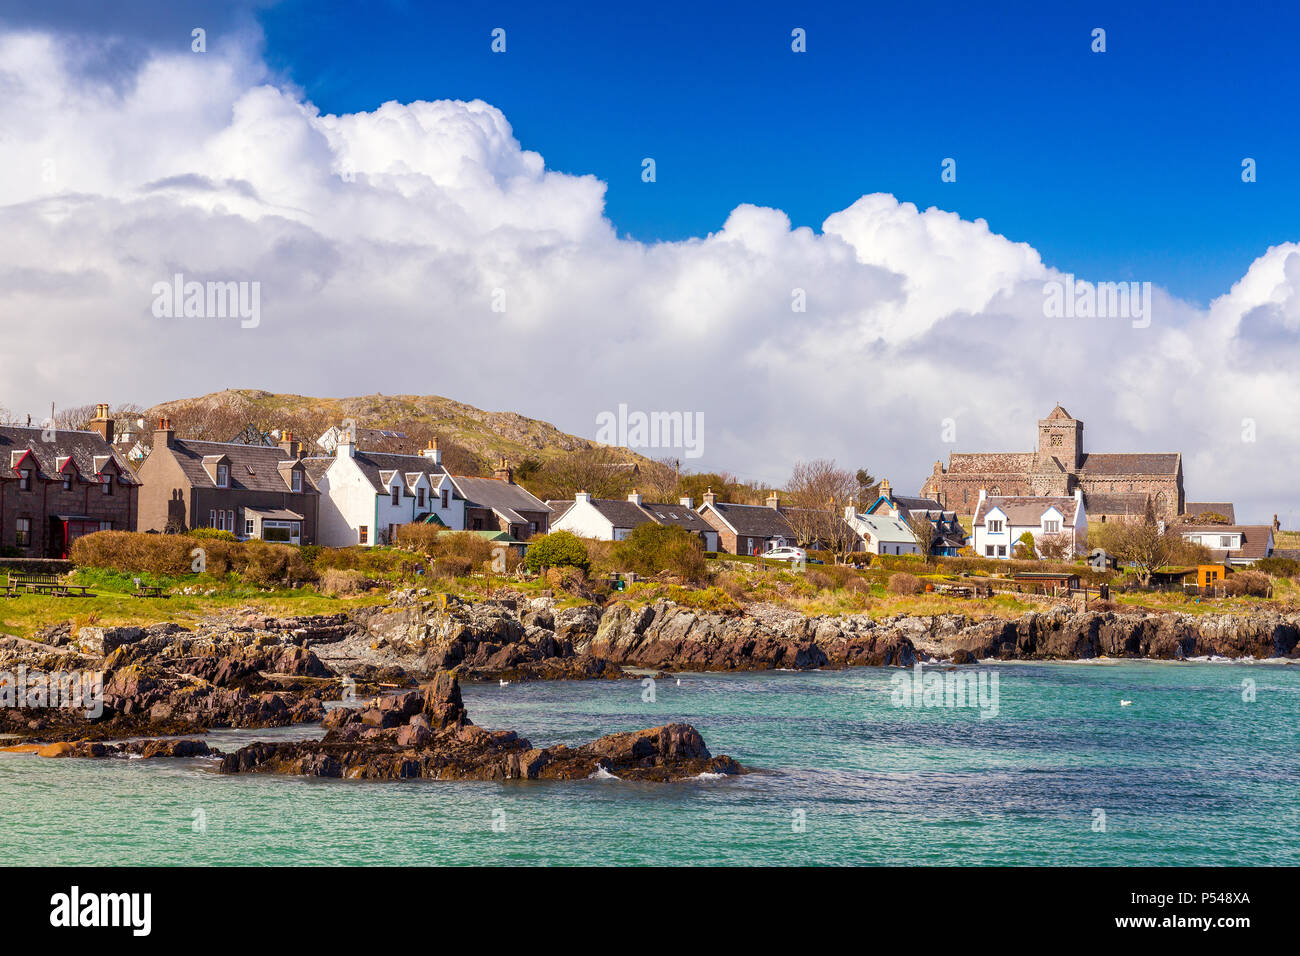 The village of Baile Mor and the historic Abbey church on the Hebridean island of Iona both overlook the Sound of Iona, Argyll and Bute, Scotland, UK - Stock Image